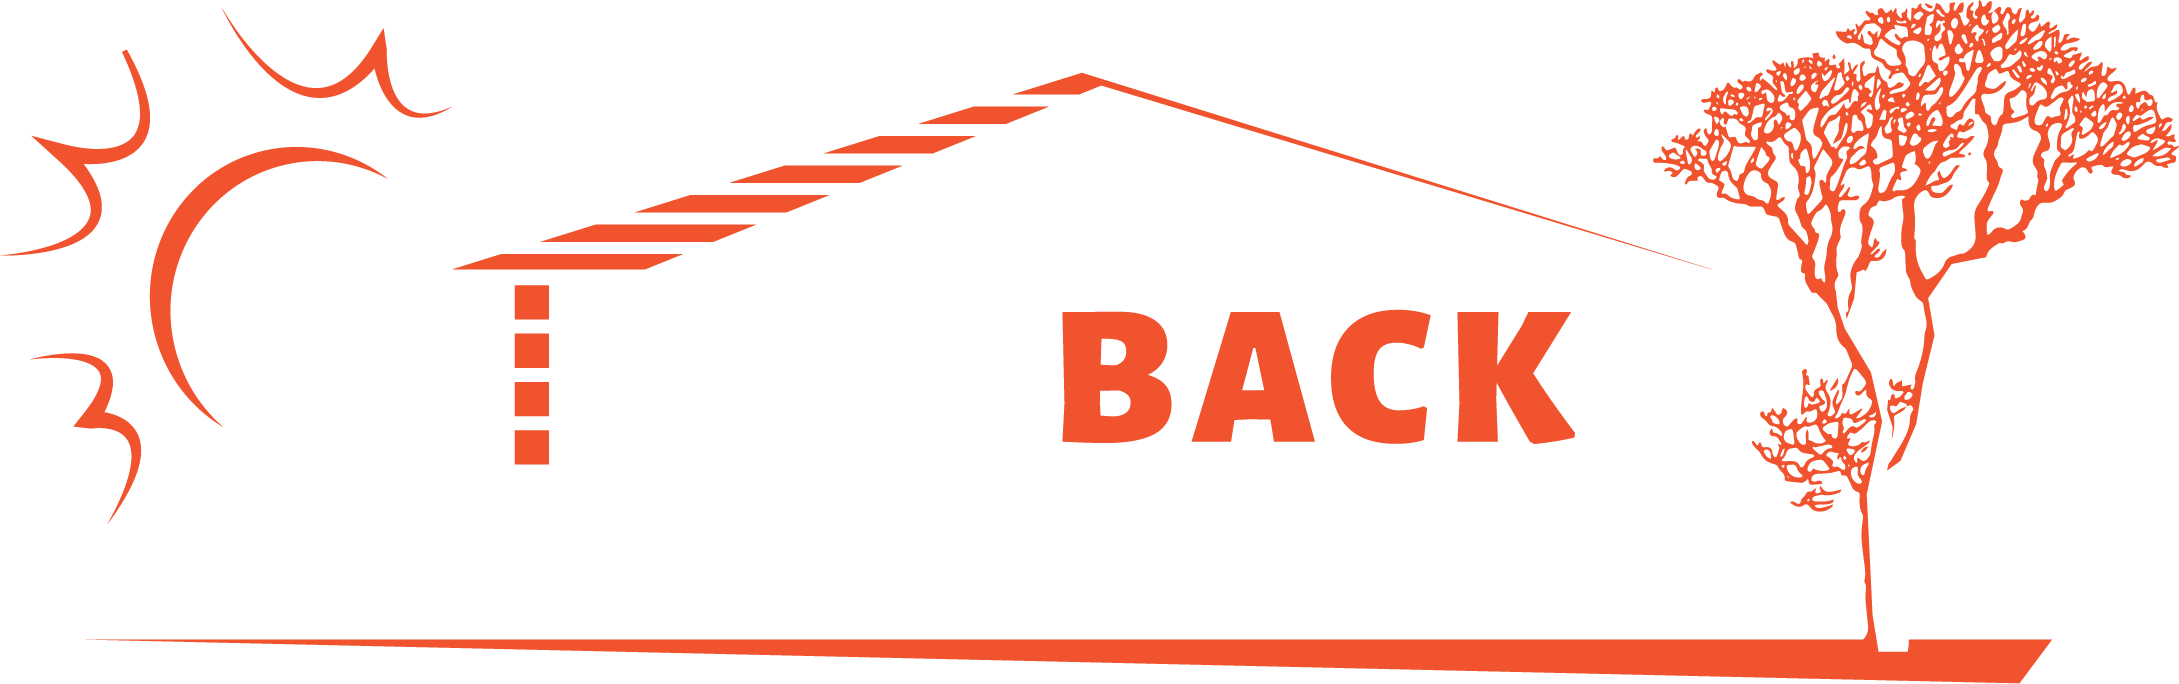 Out-Back Portable